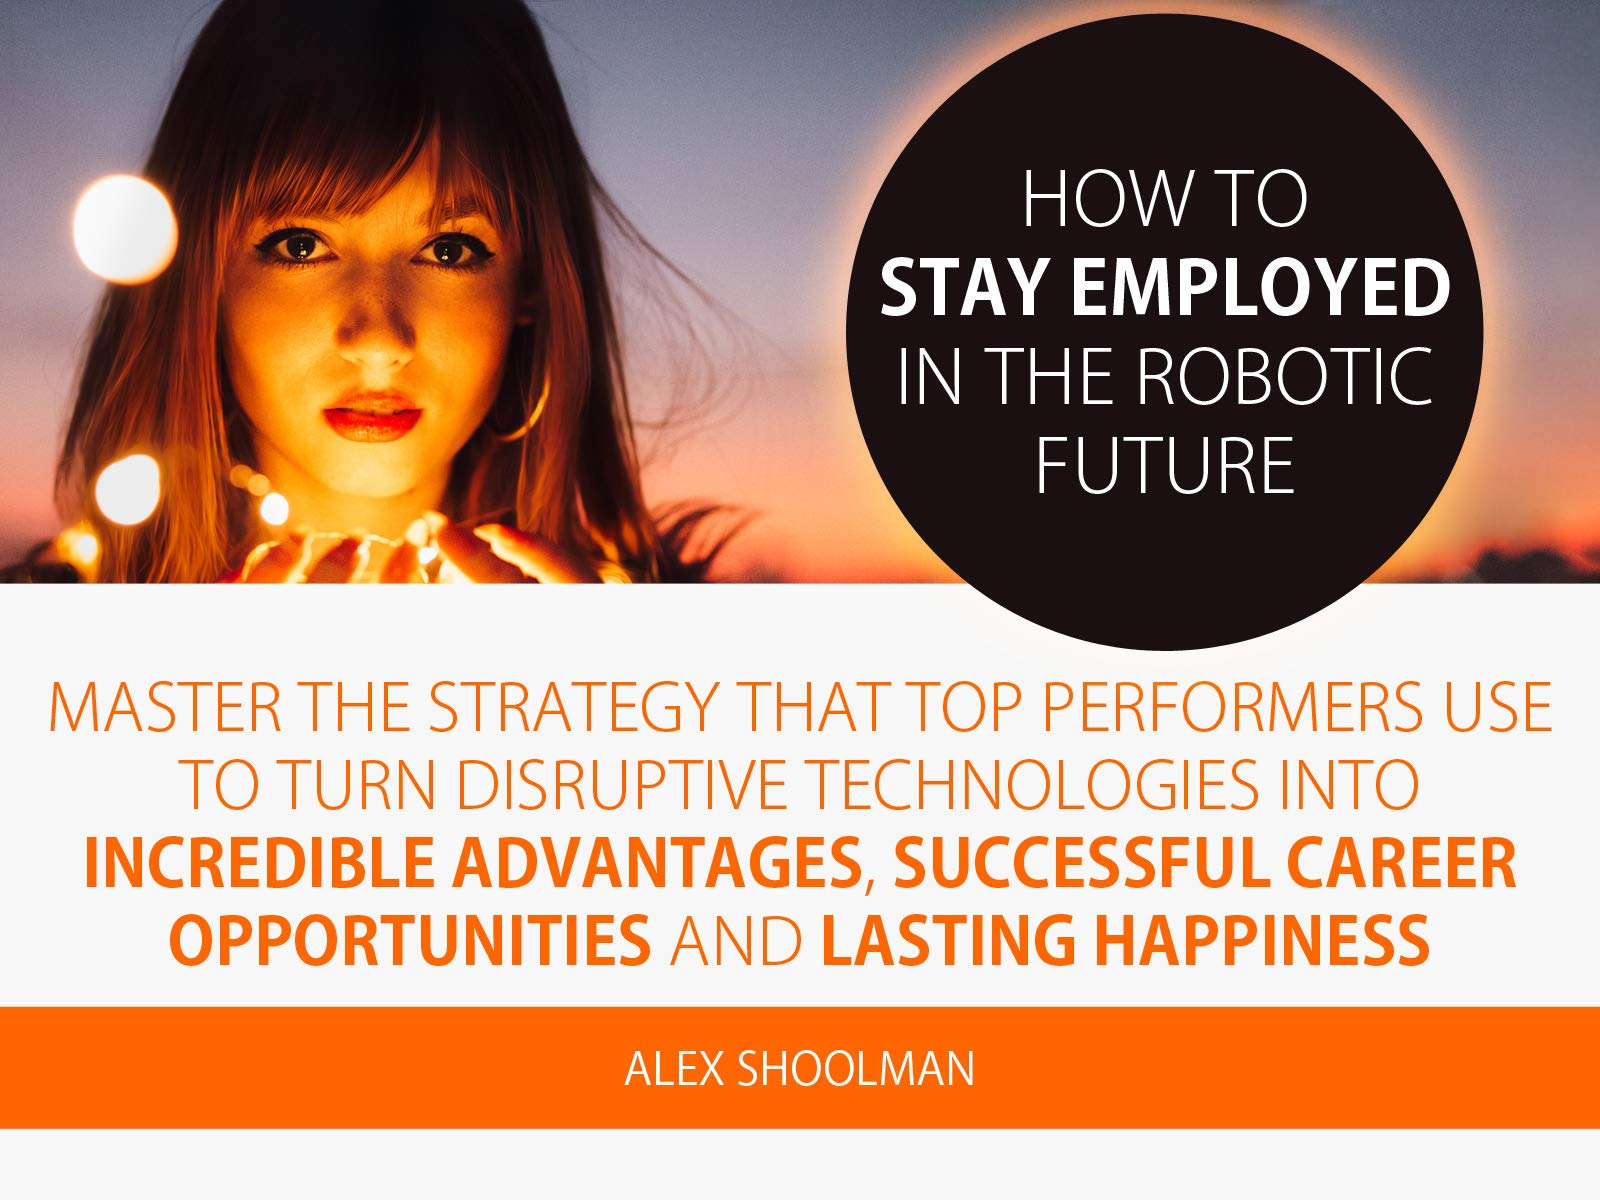 How To Stay Employed In The Robotic Future